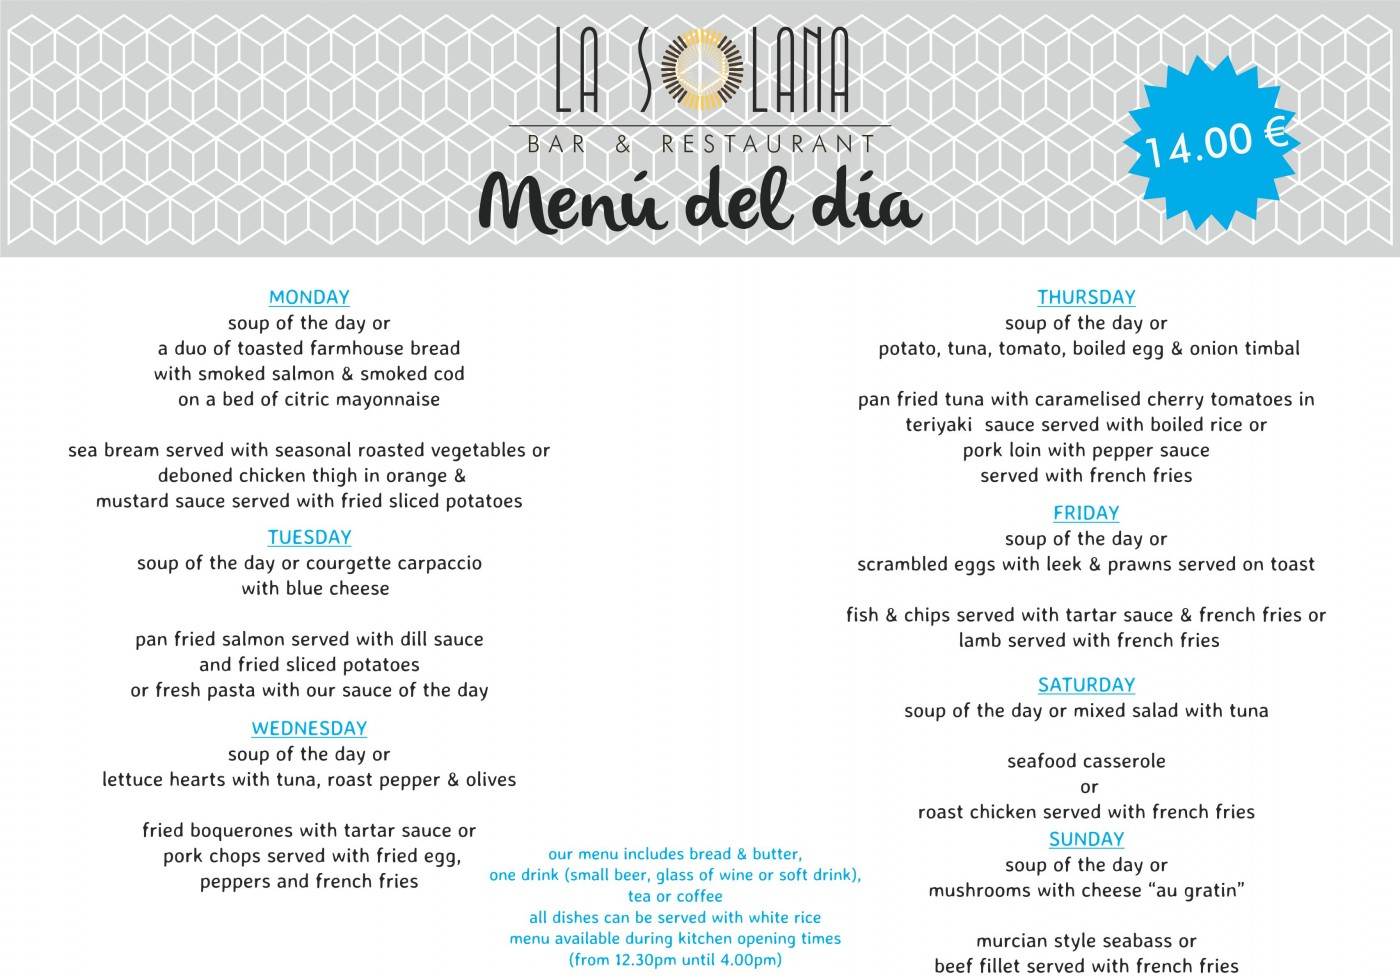 La Solana Bar and Restaurant at La Manga Club